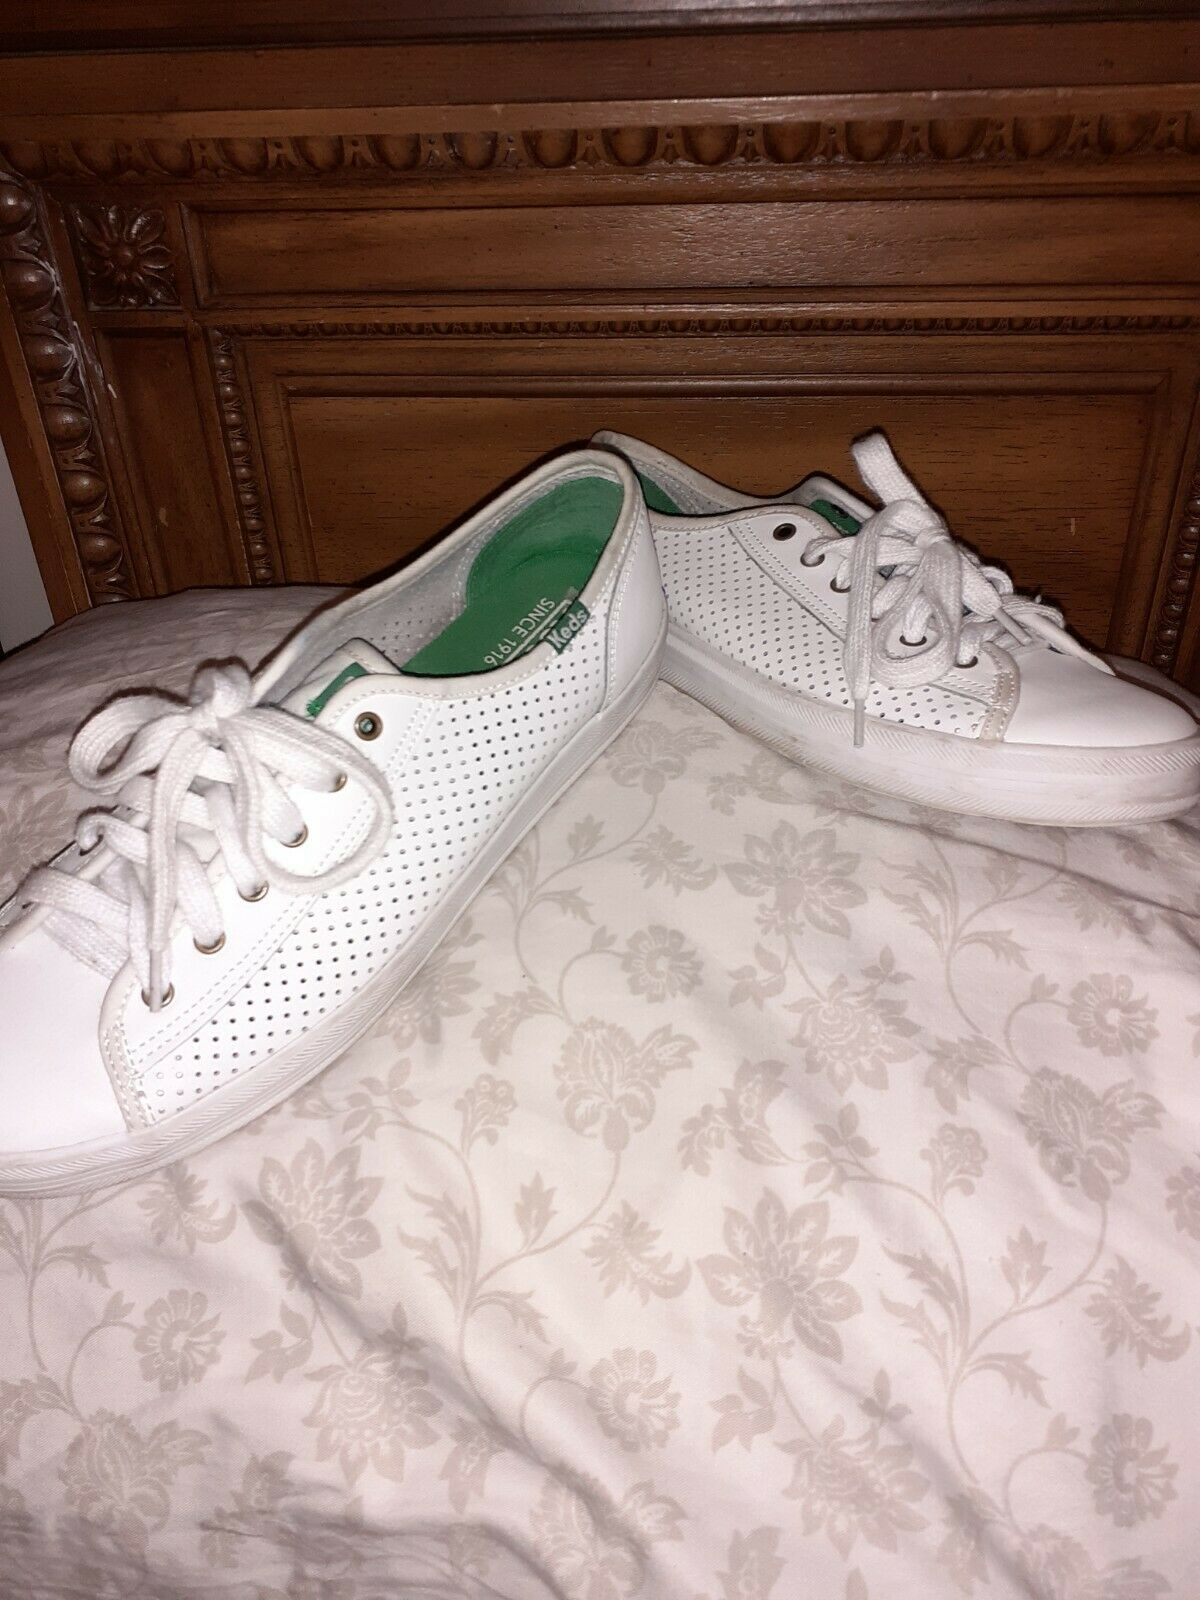 womens white leather keds tennis shoes green